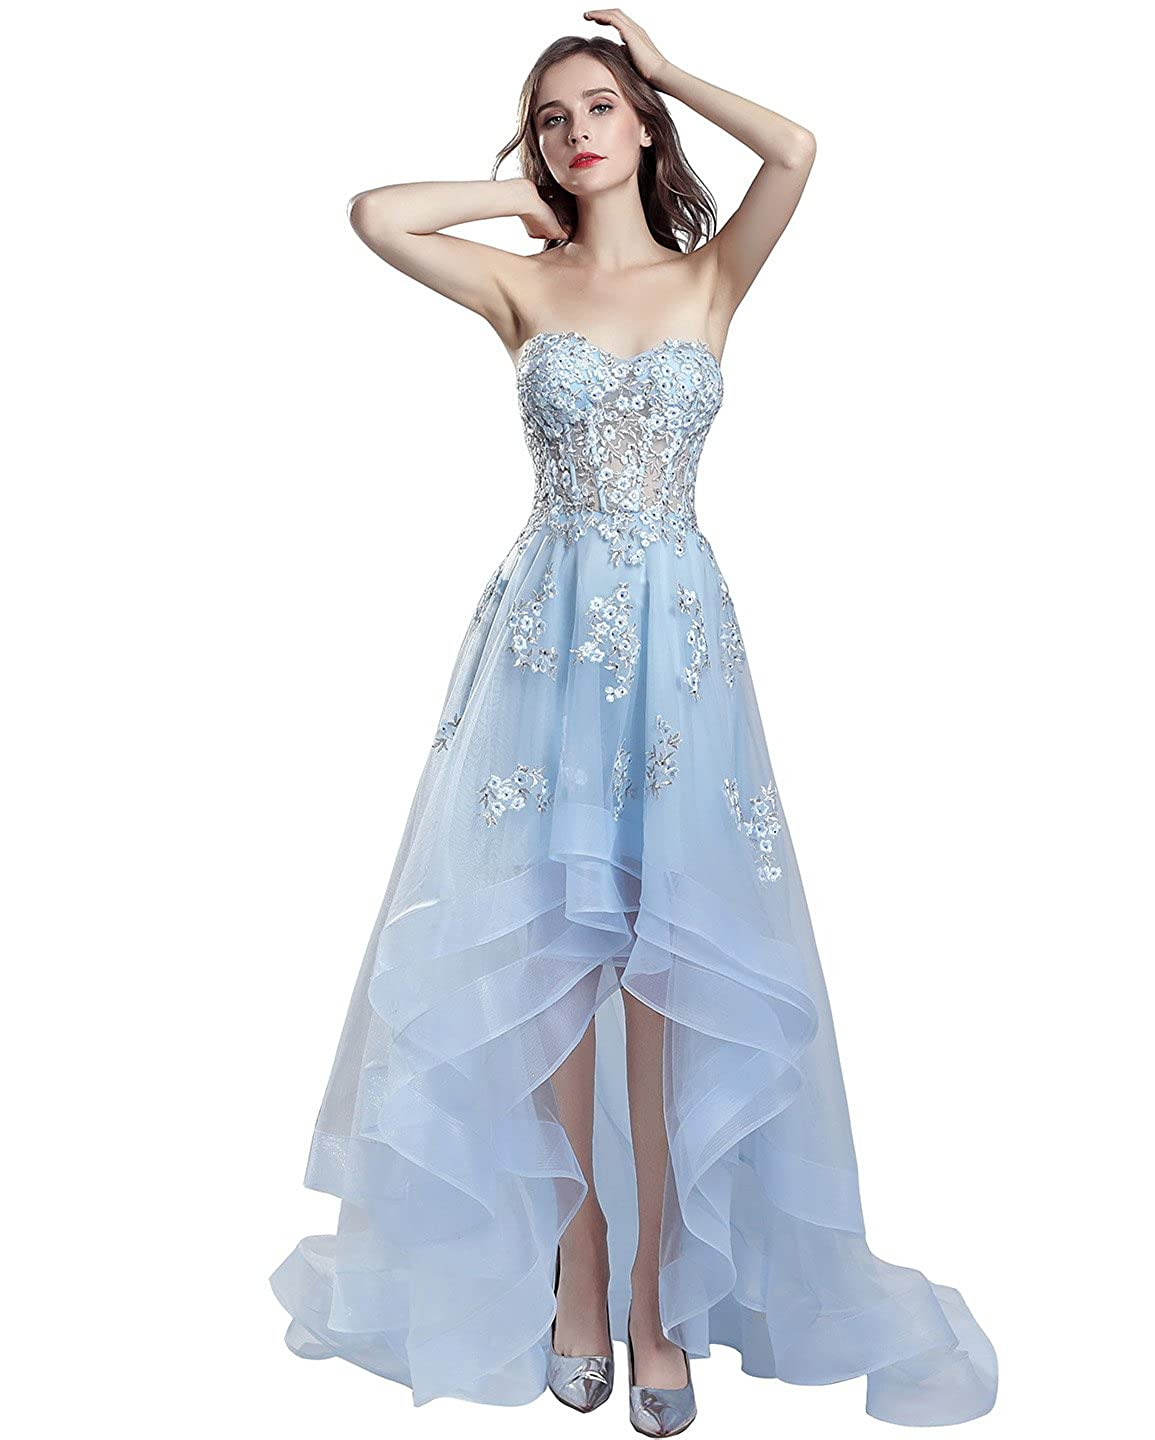 552baby bluee Sarahbridal Women's Tulle HiLow Beading Prom Dresses Evening Homecoming Cocktail Gowns